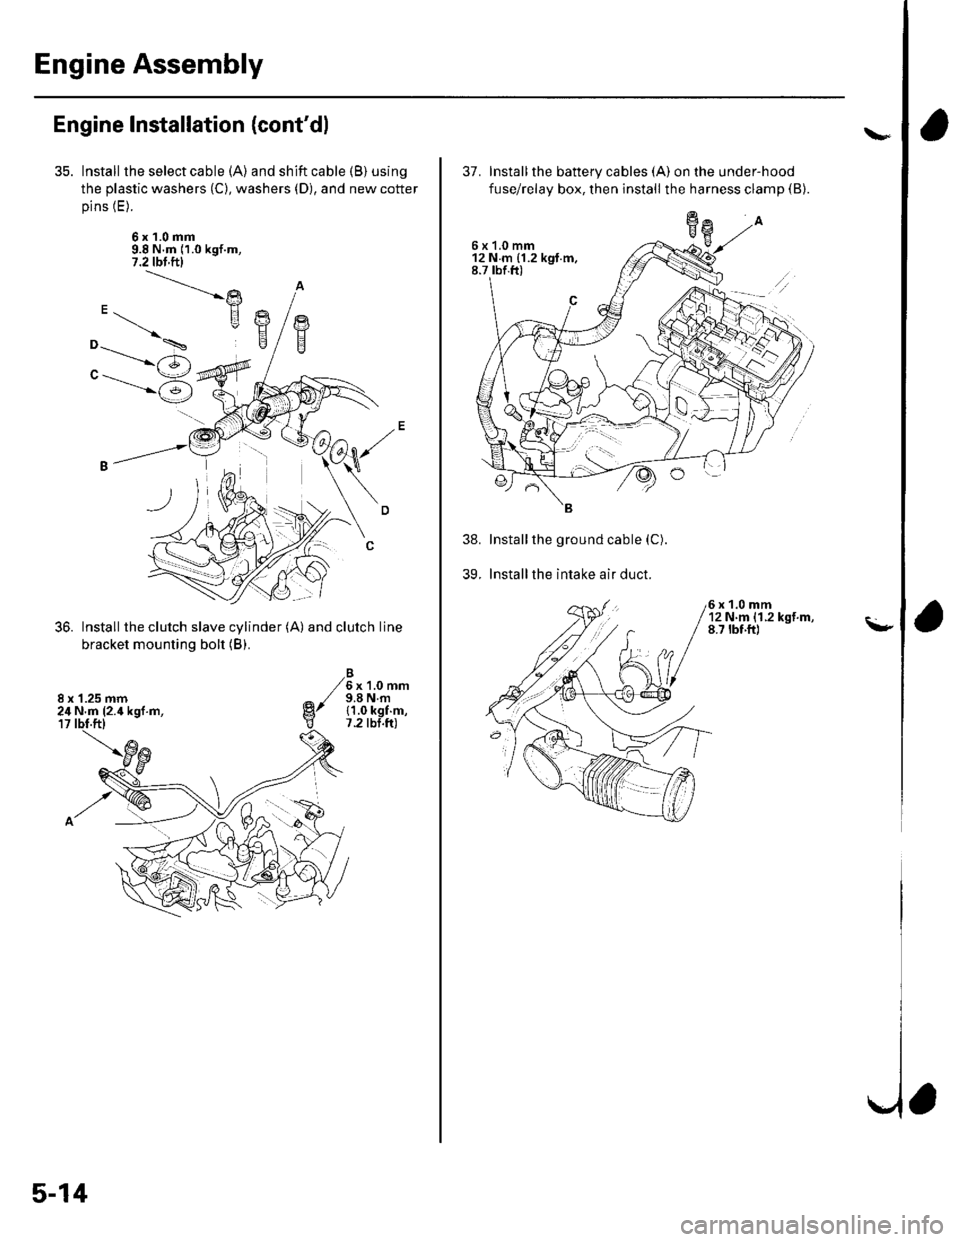 Honda Civic 2002 7g Workshop Manual Under Hood Fuse Relay Box Page 94 Engine Assembly